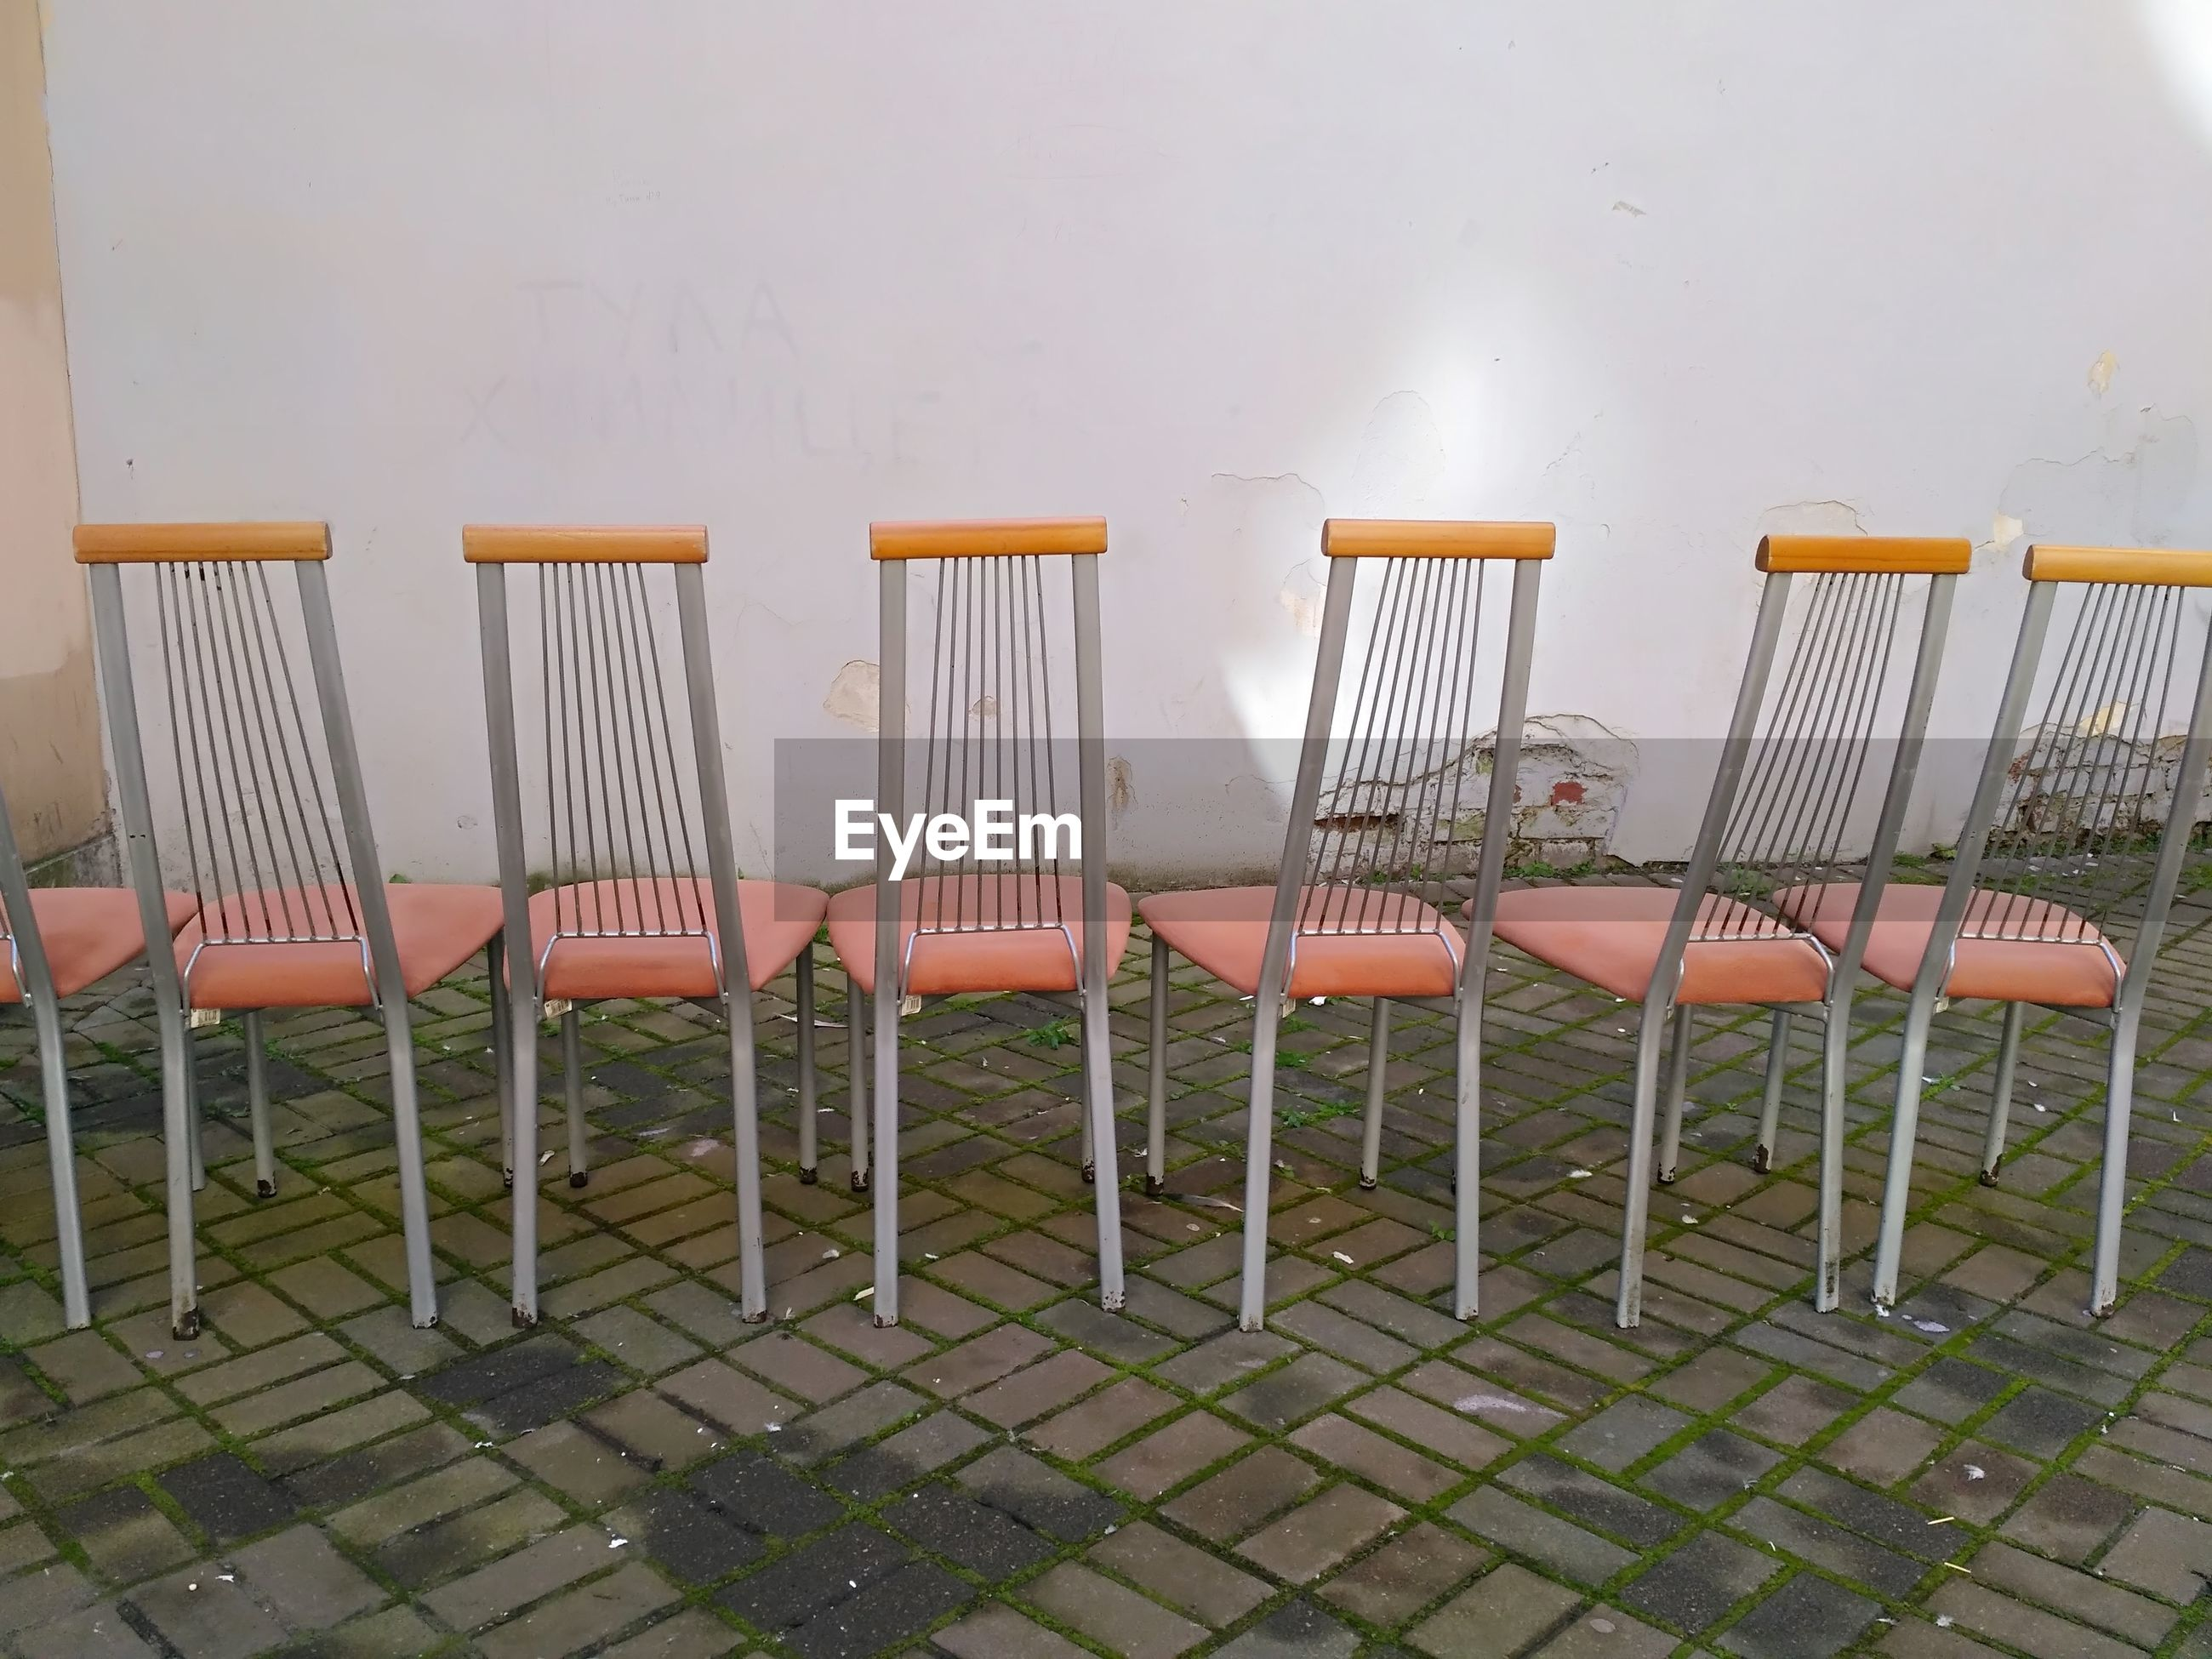 CLOSE-UP OF CHAIRS ON SEAT